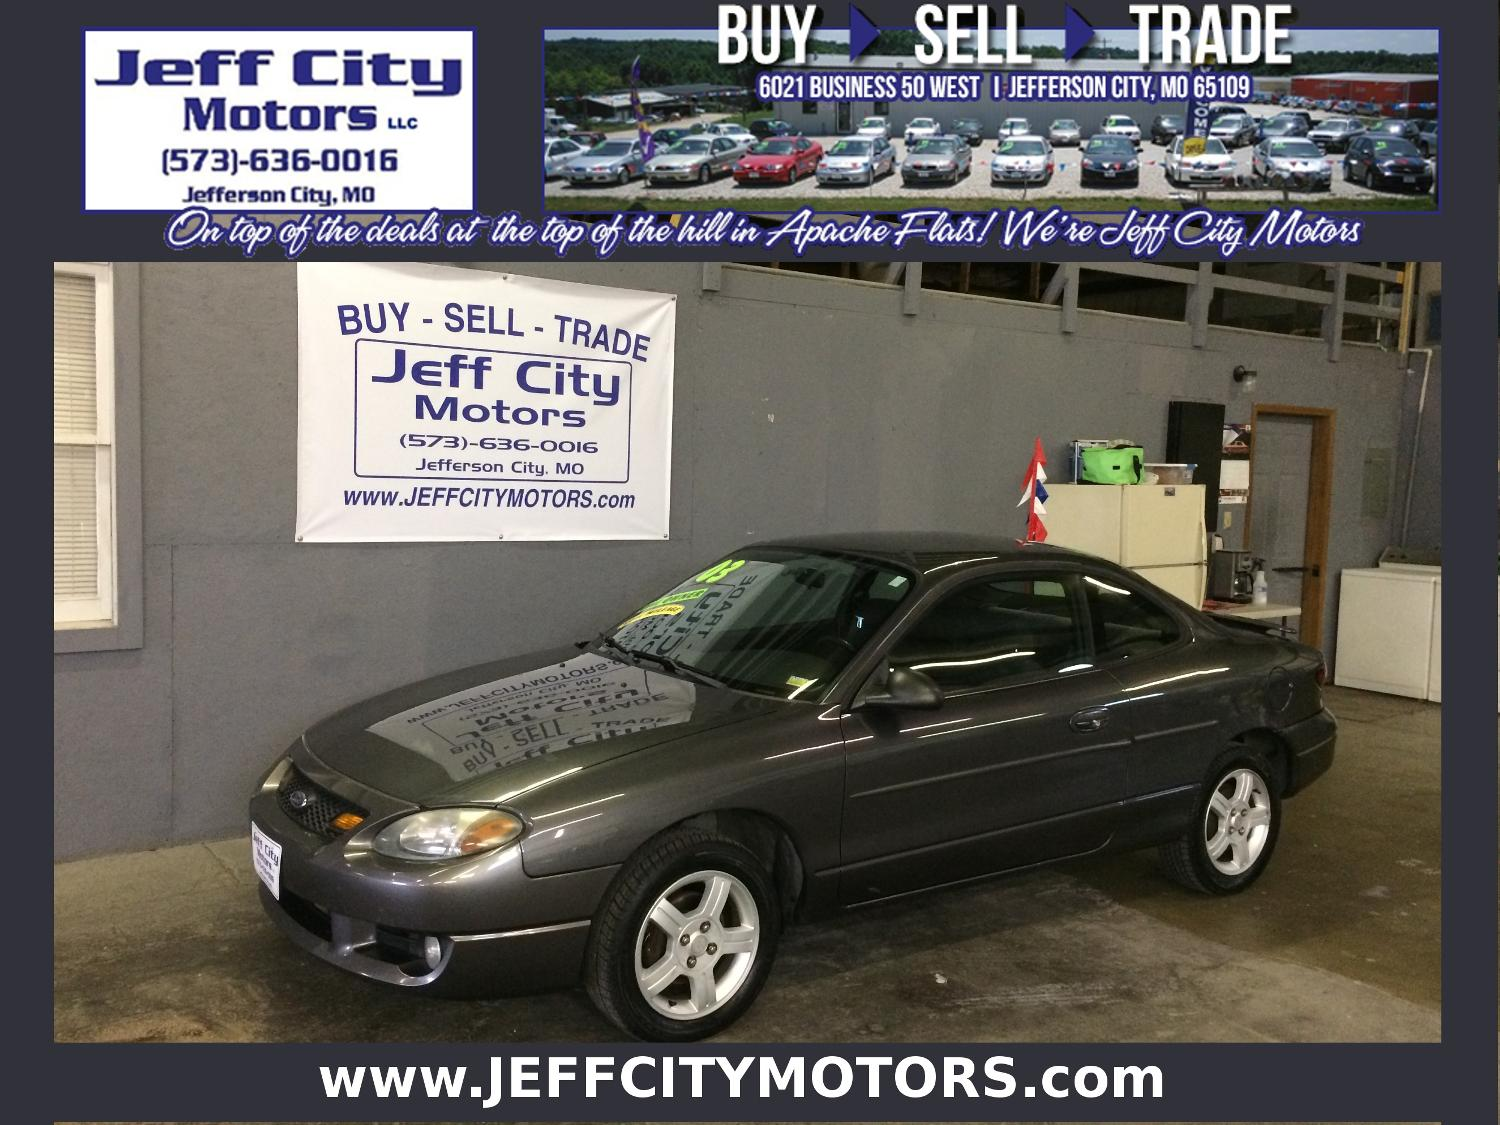 Car Dealerships In Jefferson City Mo >> Find more 2003 Ford Escort Zx2 Coupe * 1-owner for sale at up to 90% off - Columbia, MO